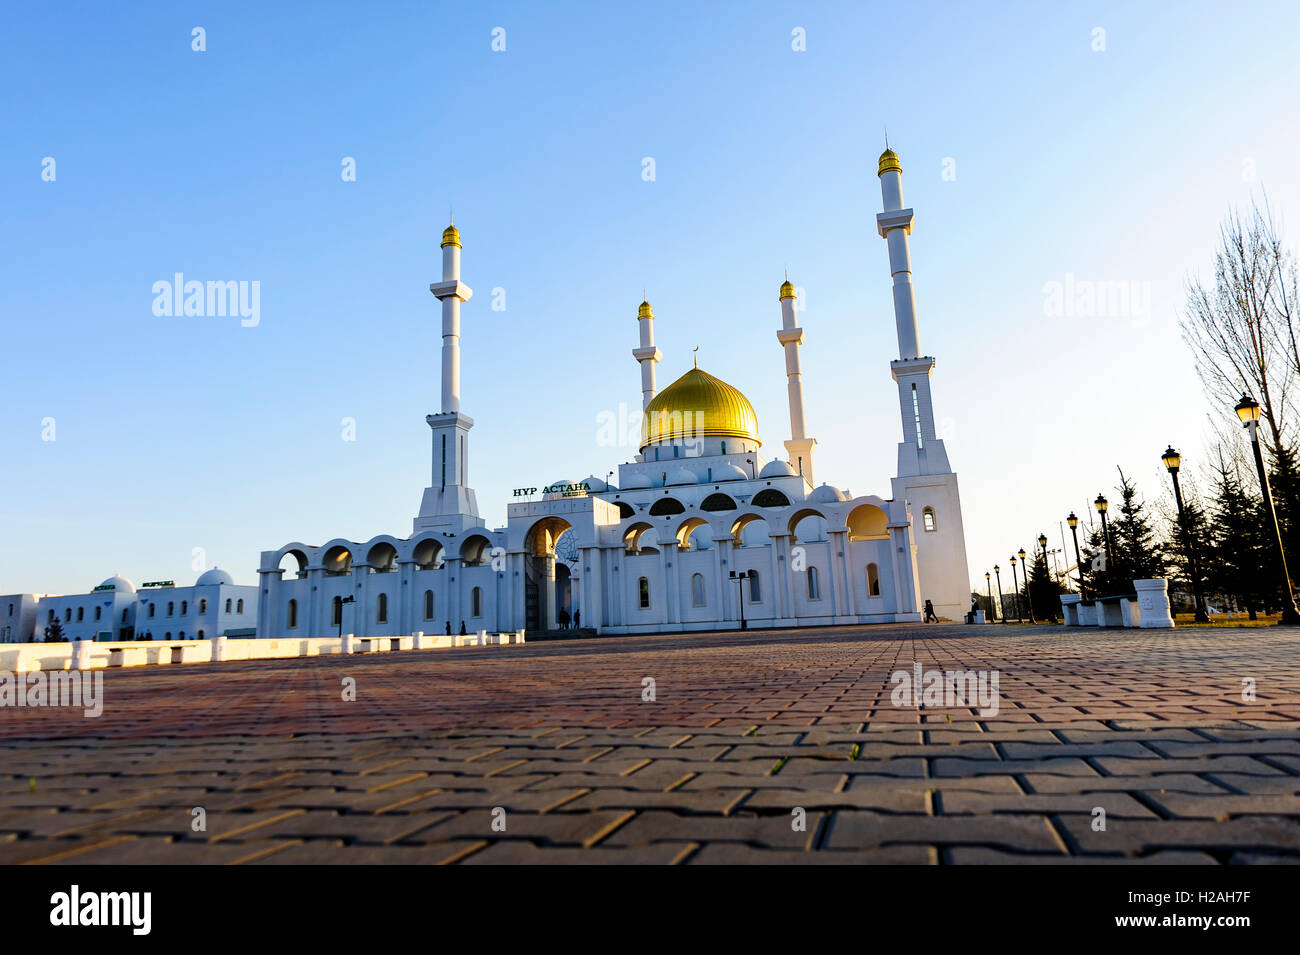 The Nur-Astana Mosque, Astana, Kazakhstan - Stock Image